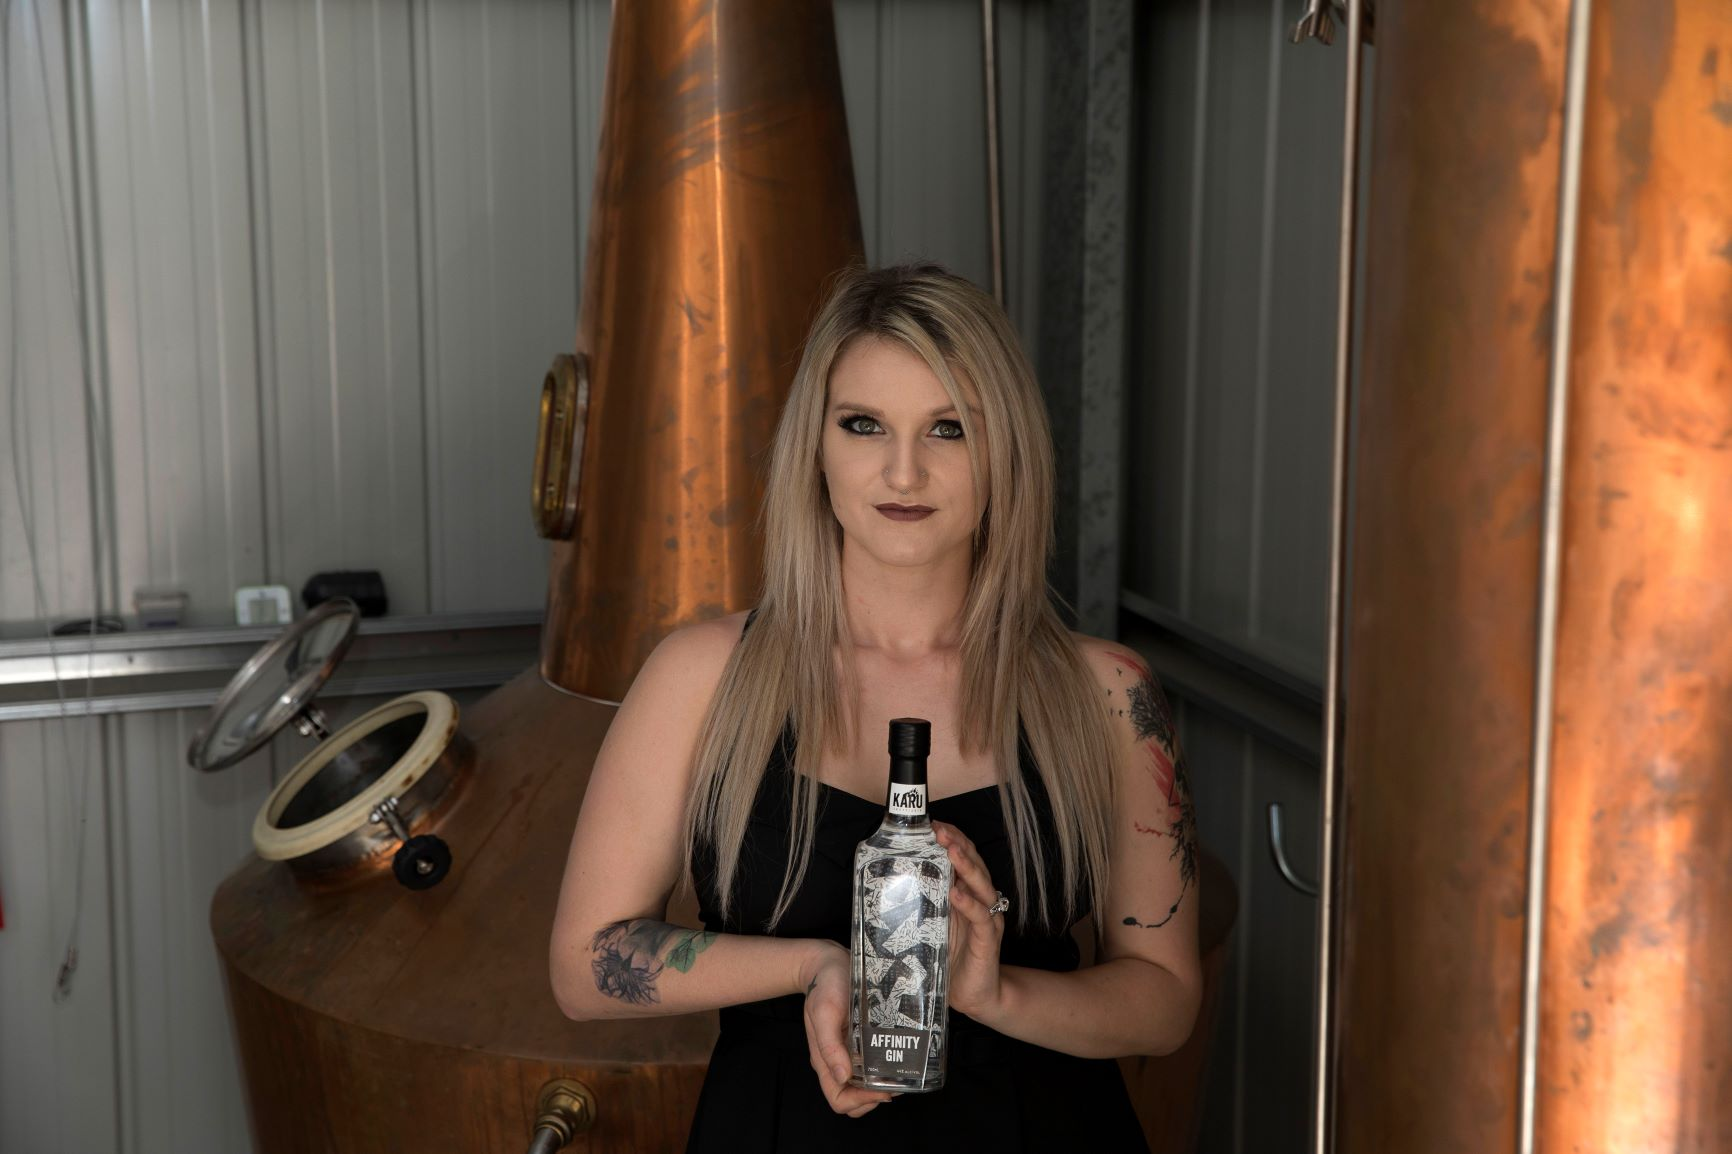 Ally Ayres from Karu Distillery holding Affinity Gin in front of their Copper Pot Still Calcifer